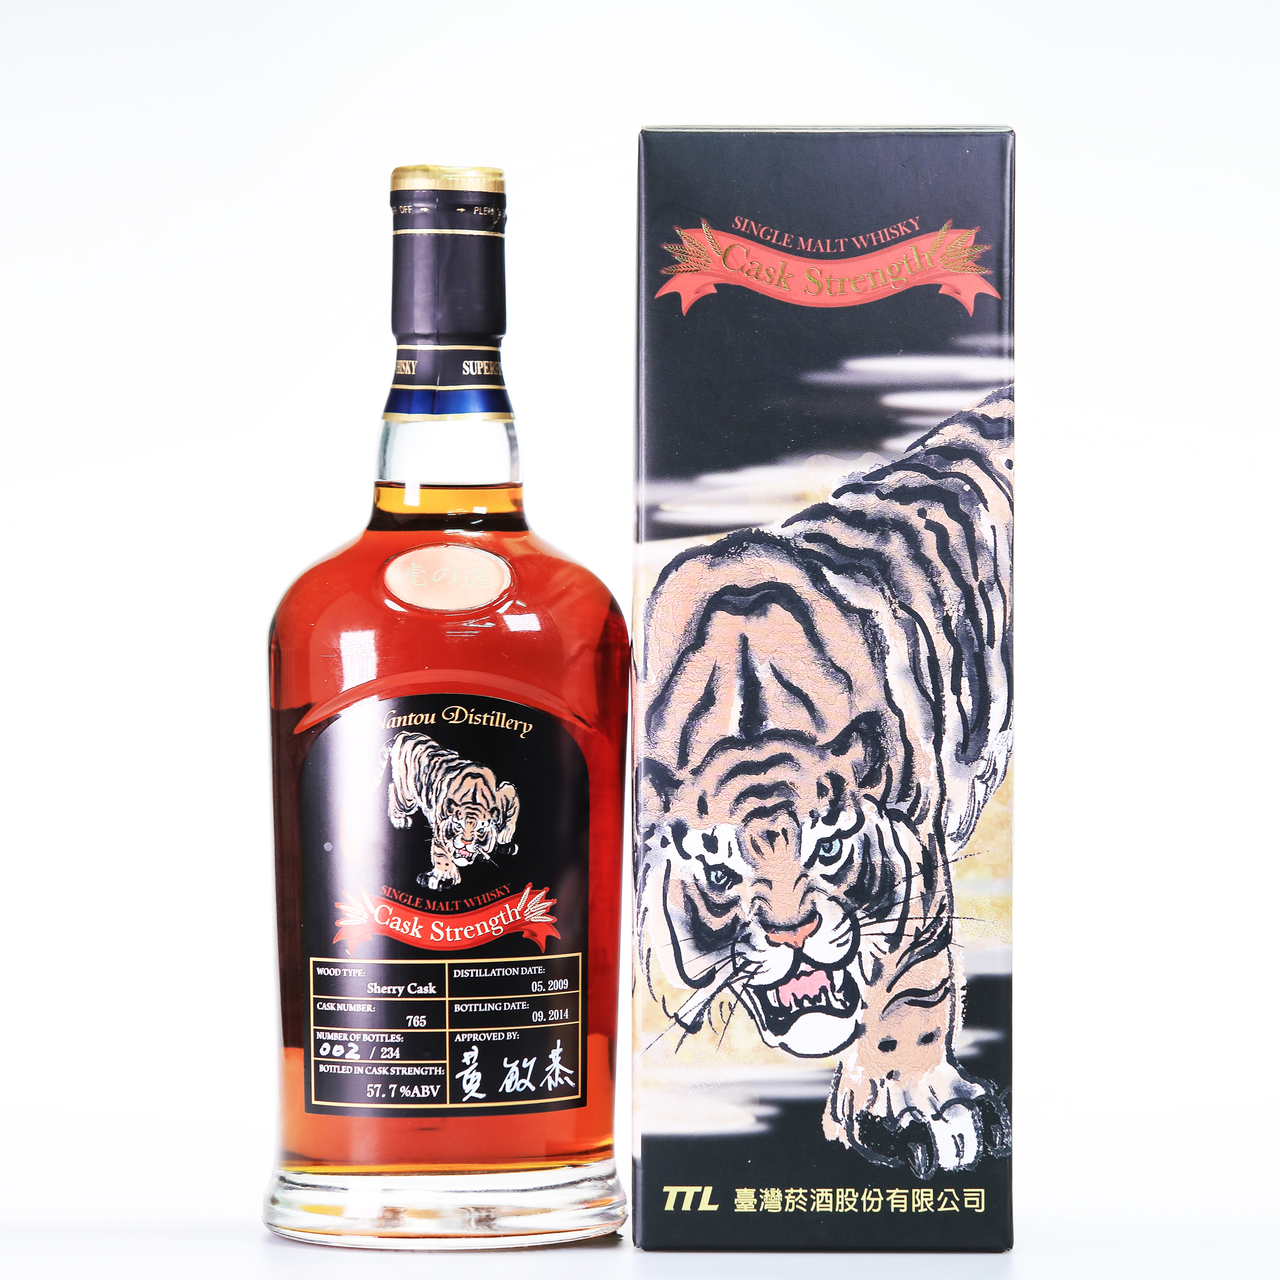 Tiger's exclusive selection nantou distillery cask strength  765